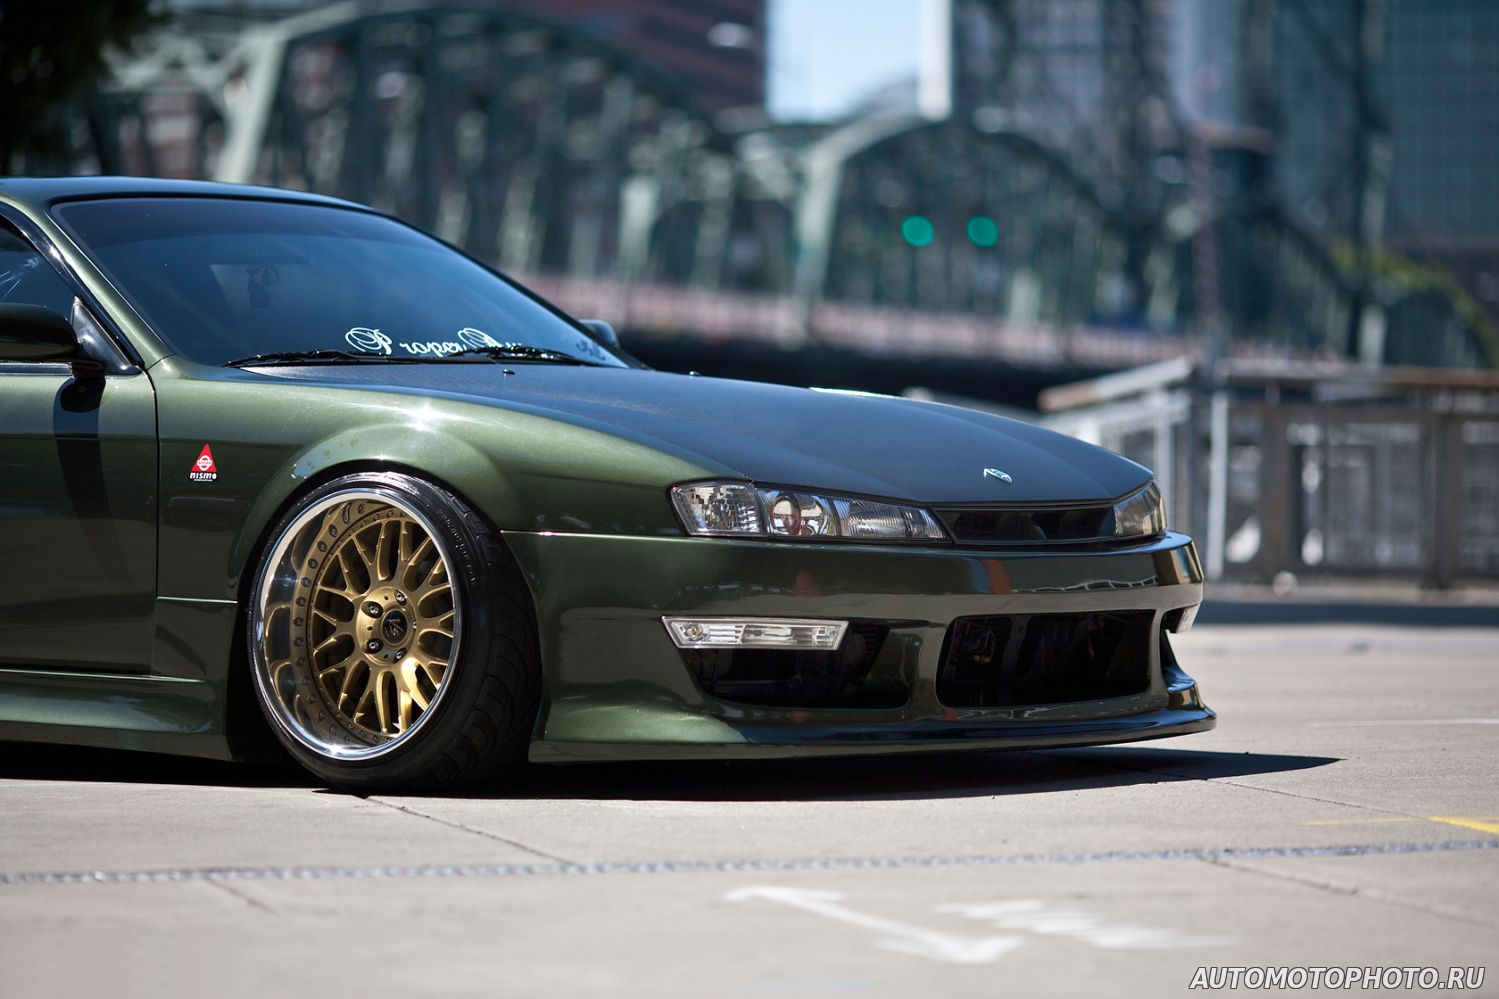 Nissan Silvia S14 On Work Wheels Vsxx